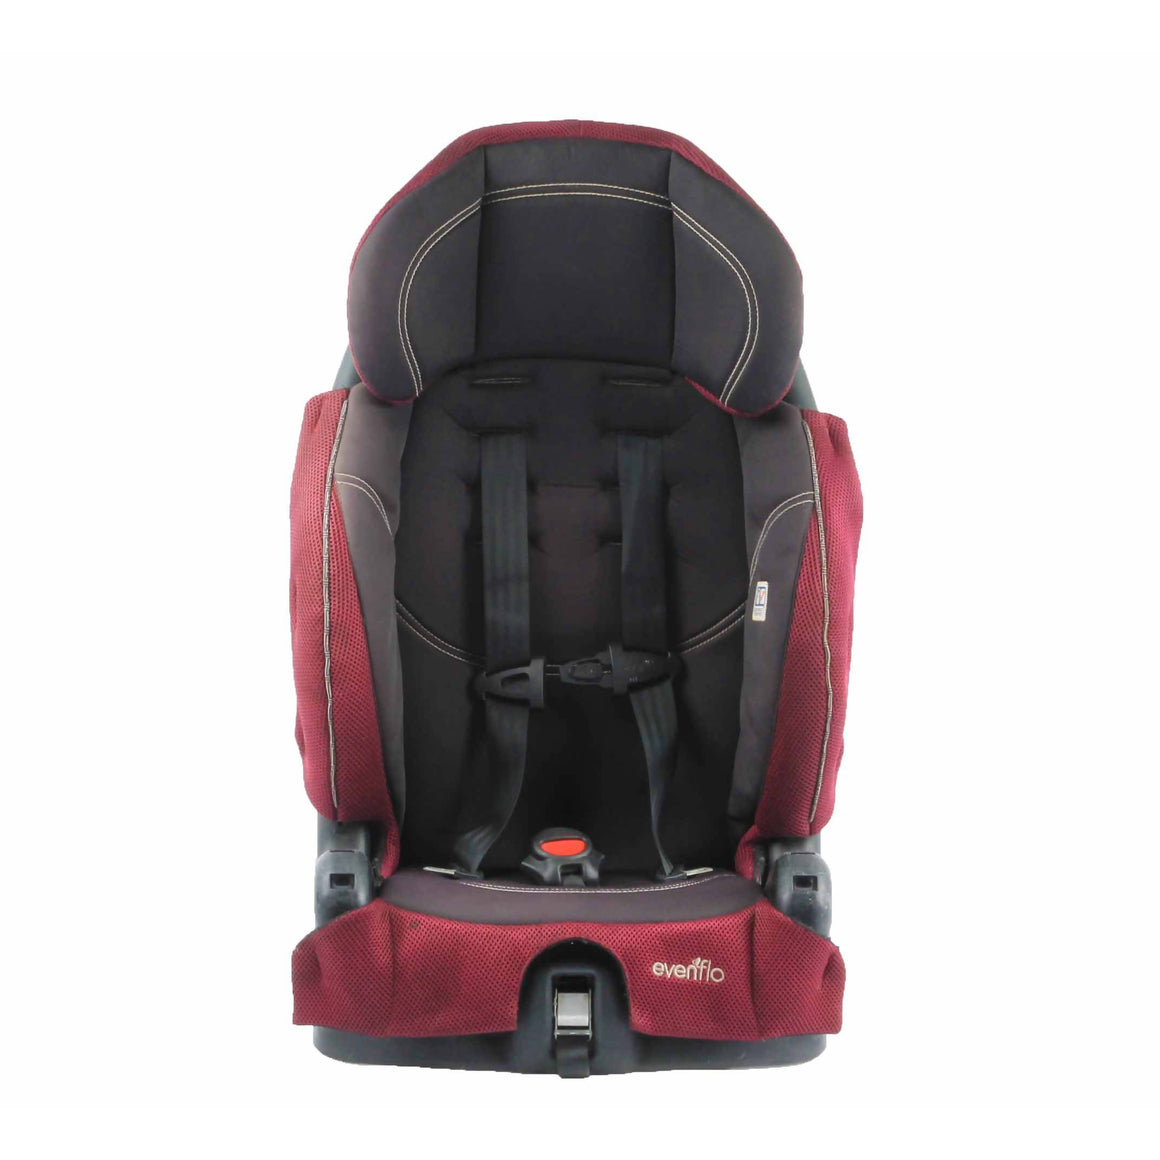 Evenflo Toddler Car Seat